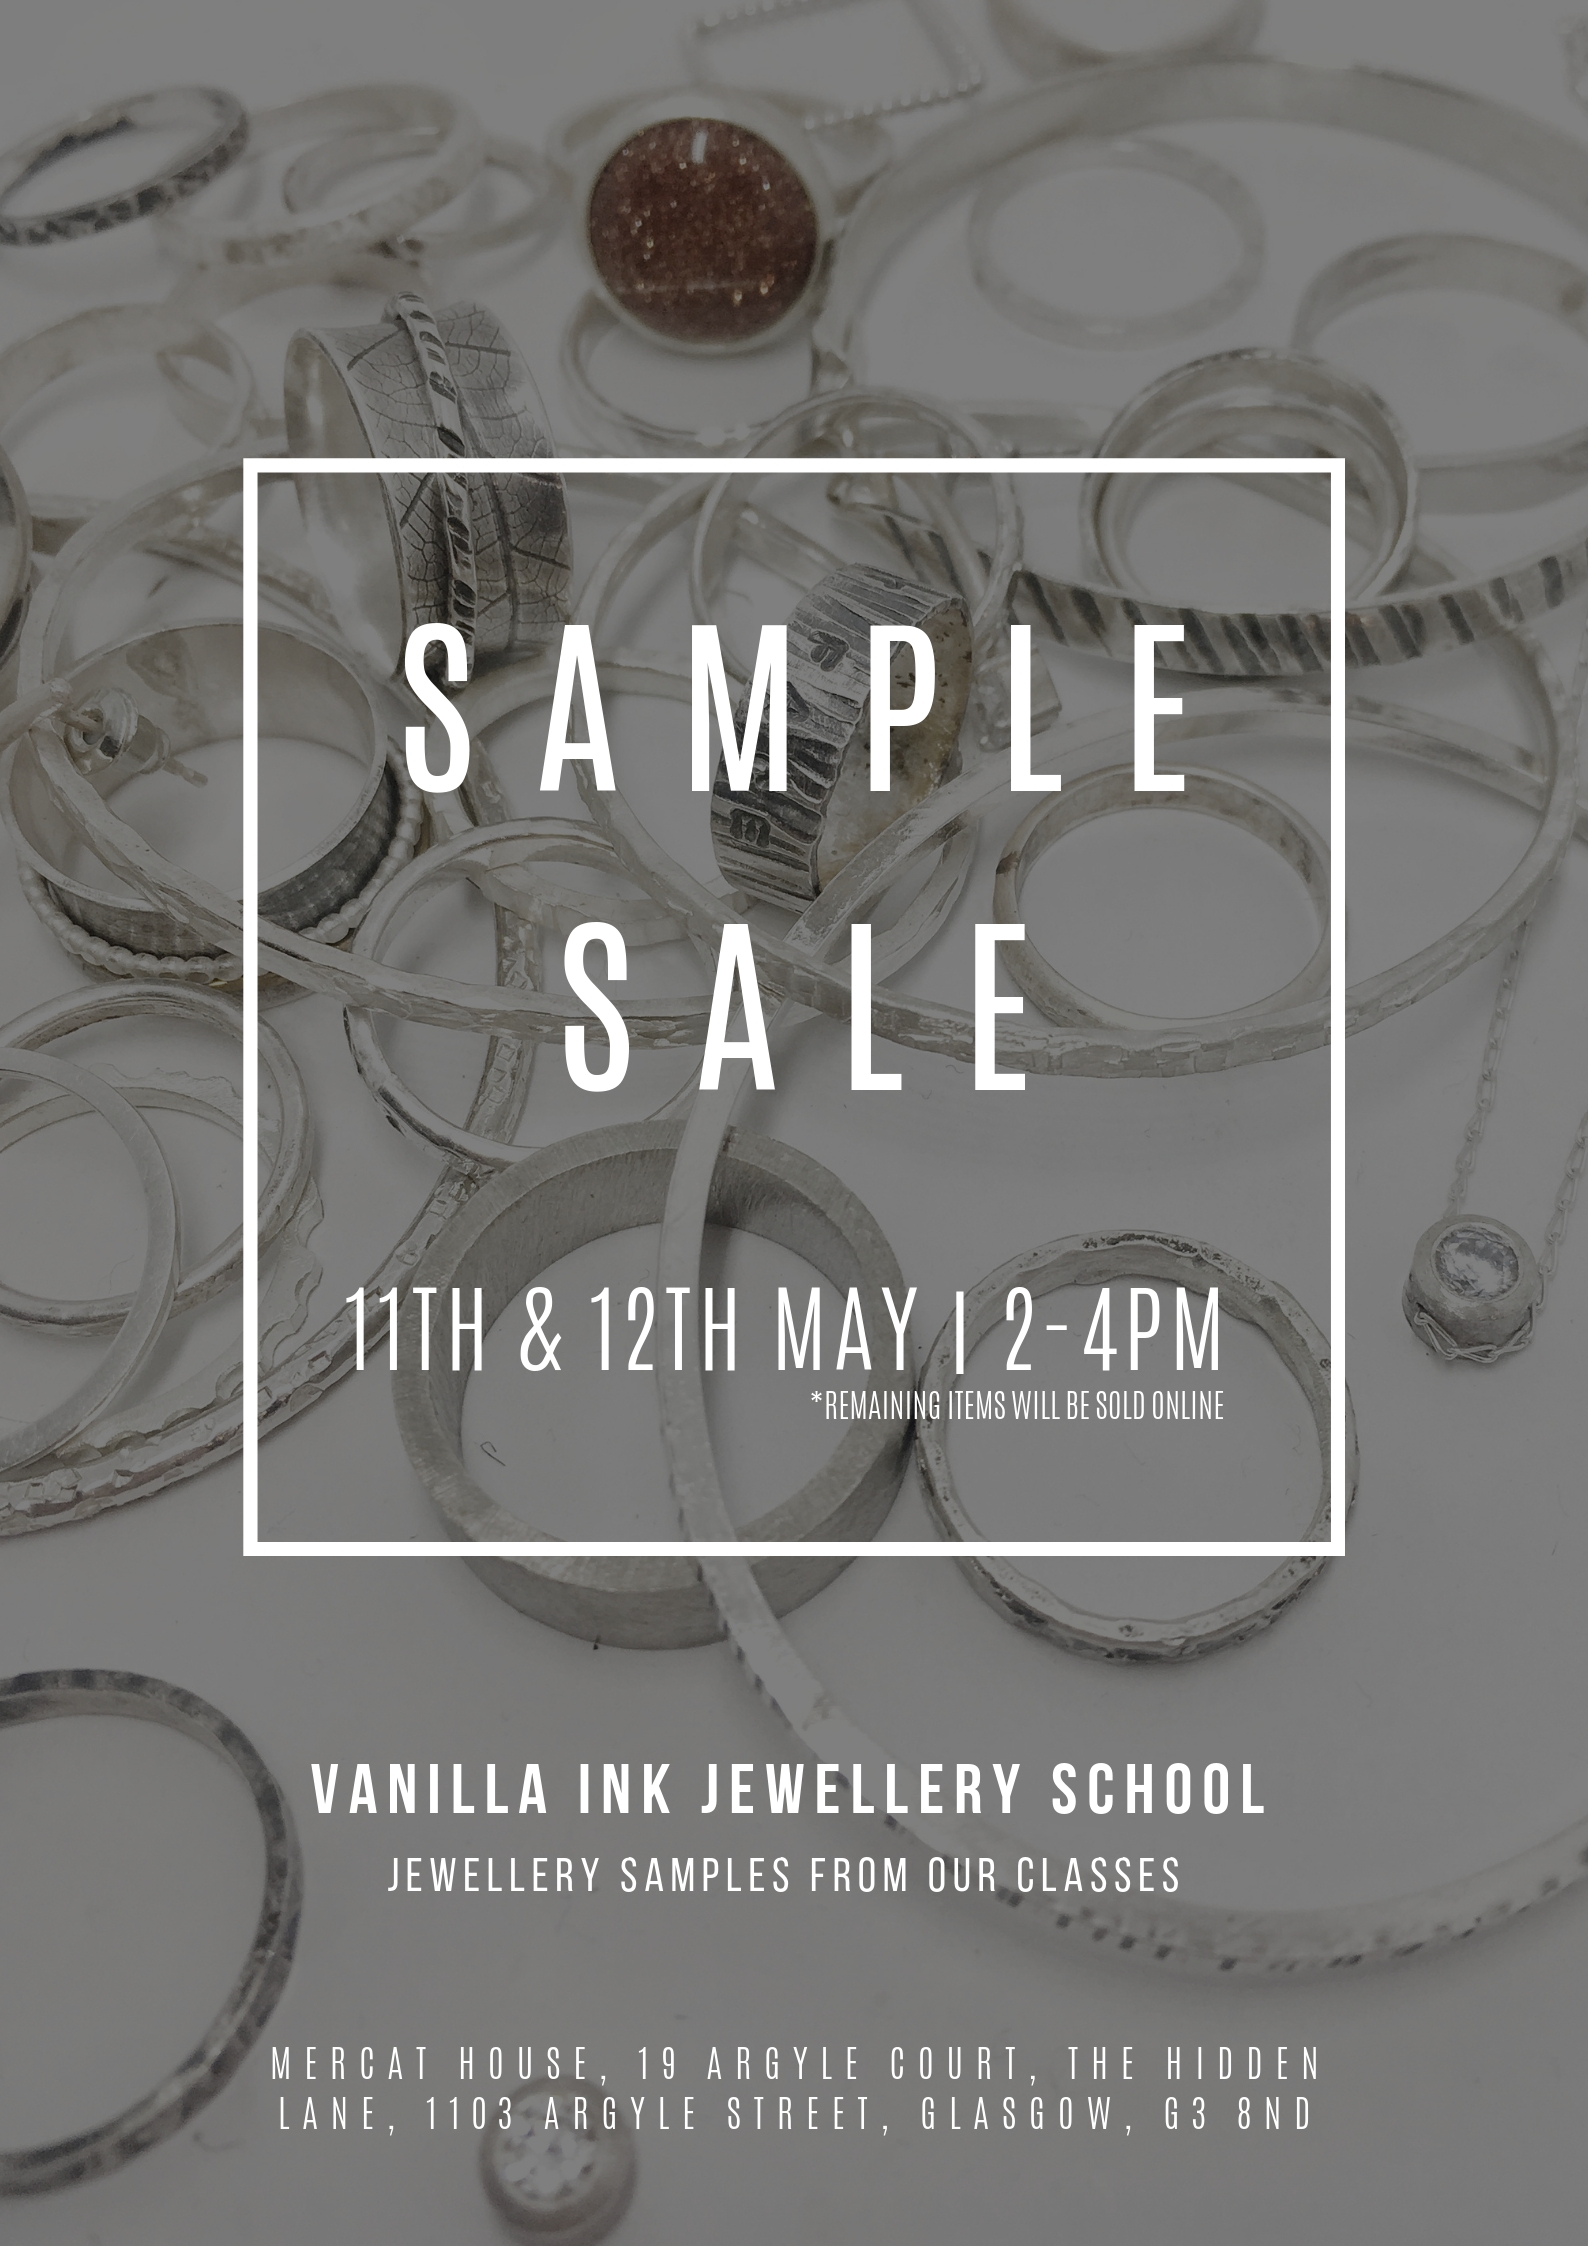 VANILLA INK JEWELLERY SCHOOL SAMPLE SALE.jpg